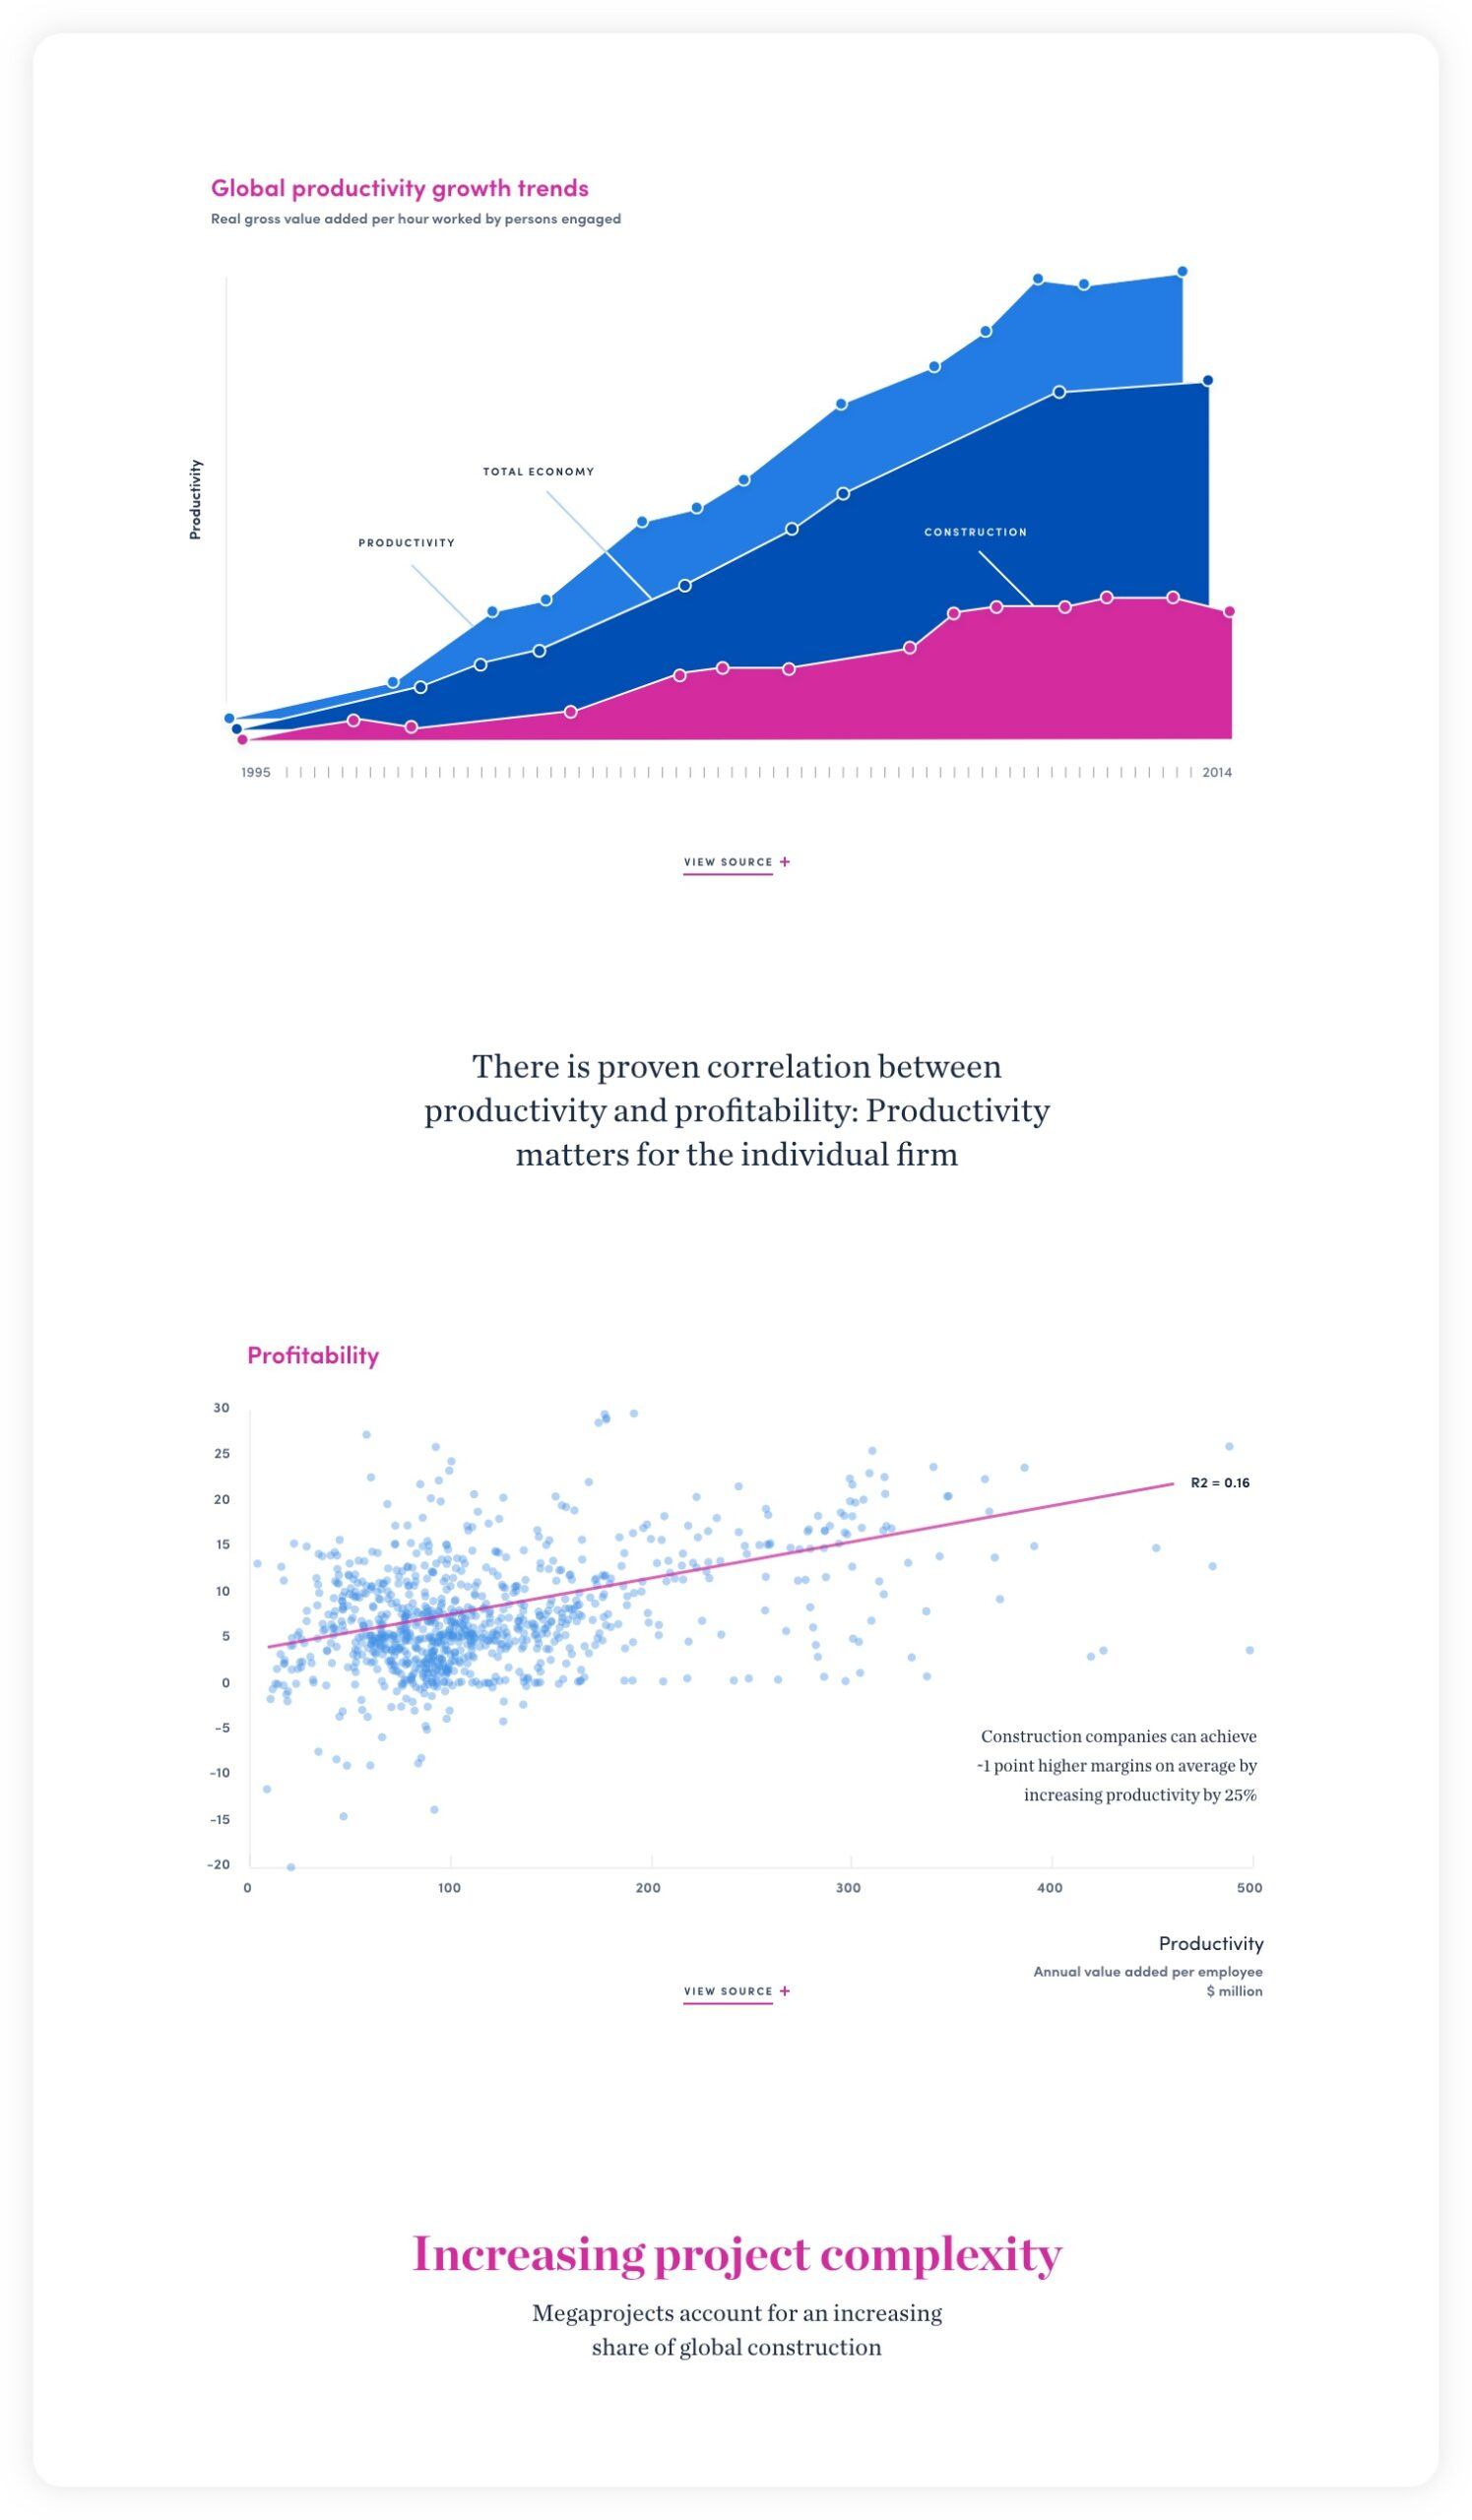 Design for Global productivity trends chart section – McKinsey C&E experience website: Navigating complexity